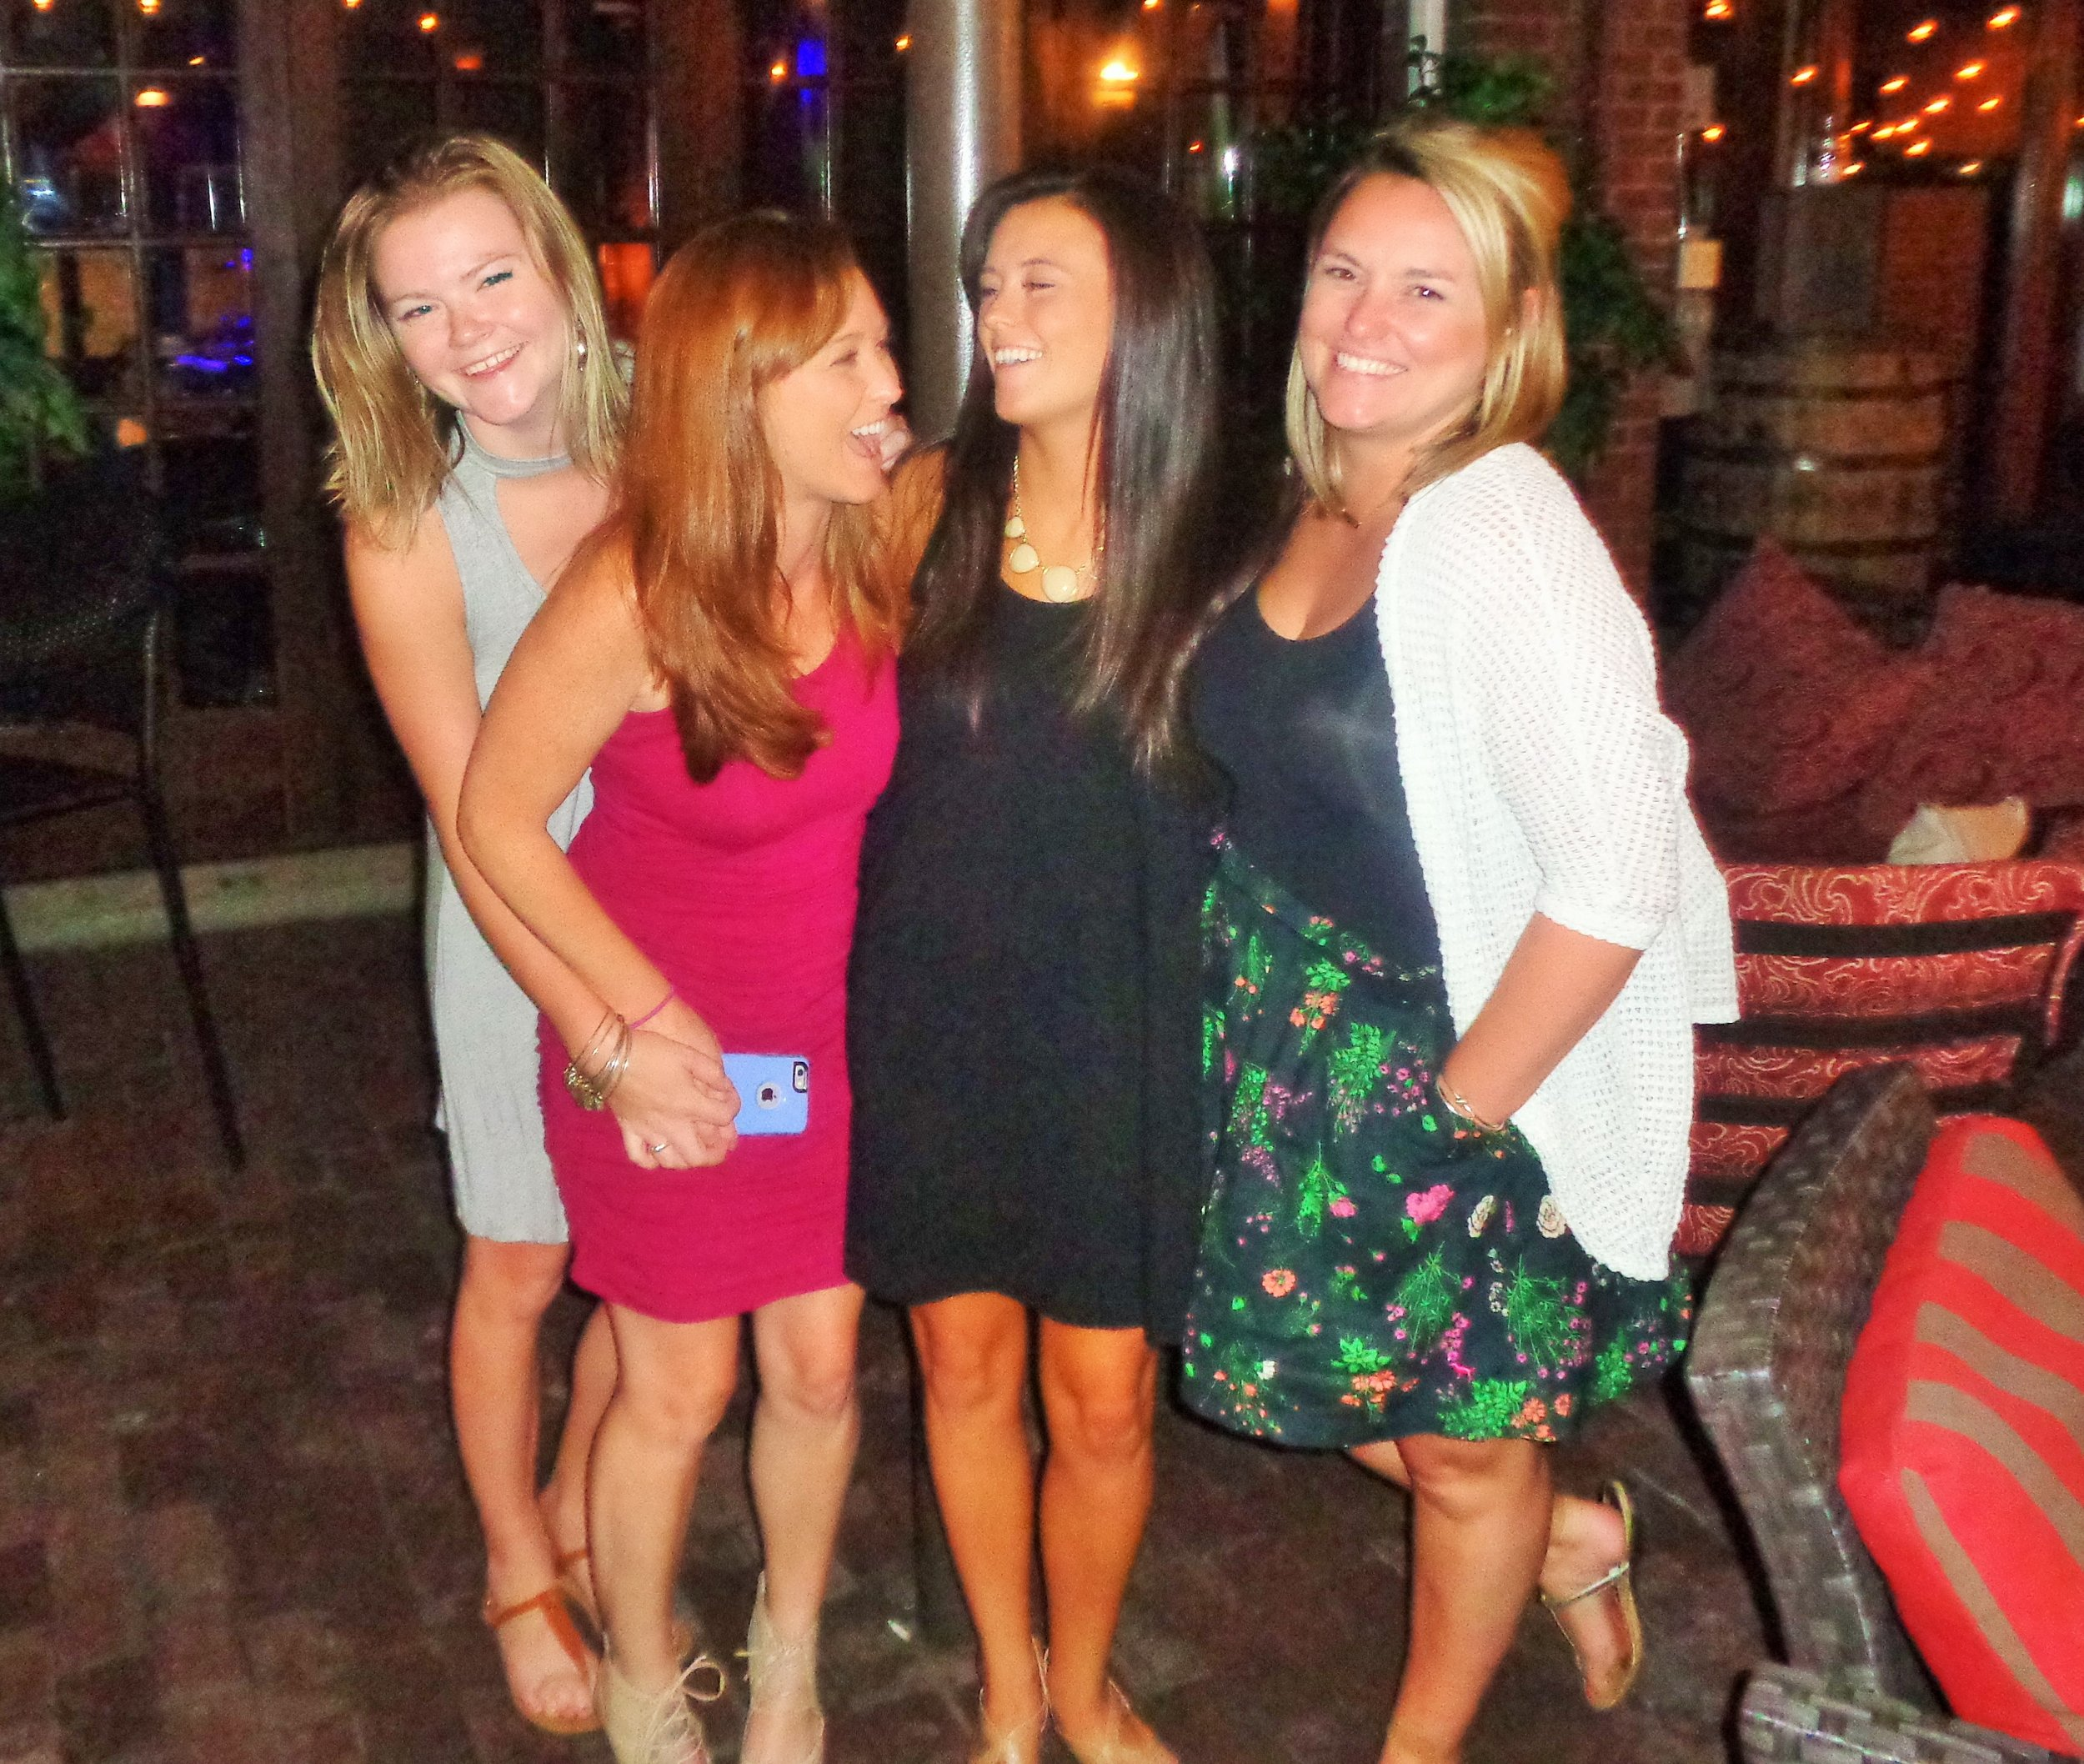 Michael's Cigar Bar takes photos of guests and events - look for yourself and your friends!